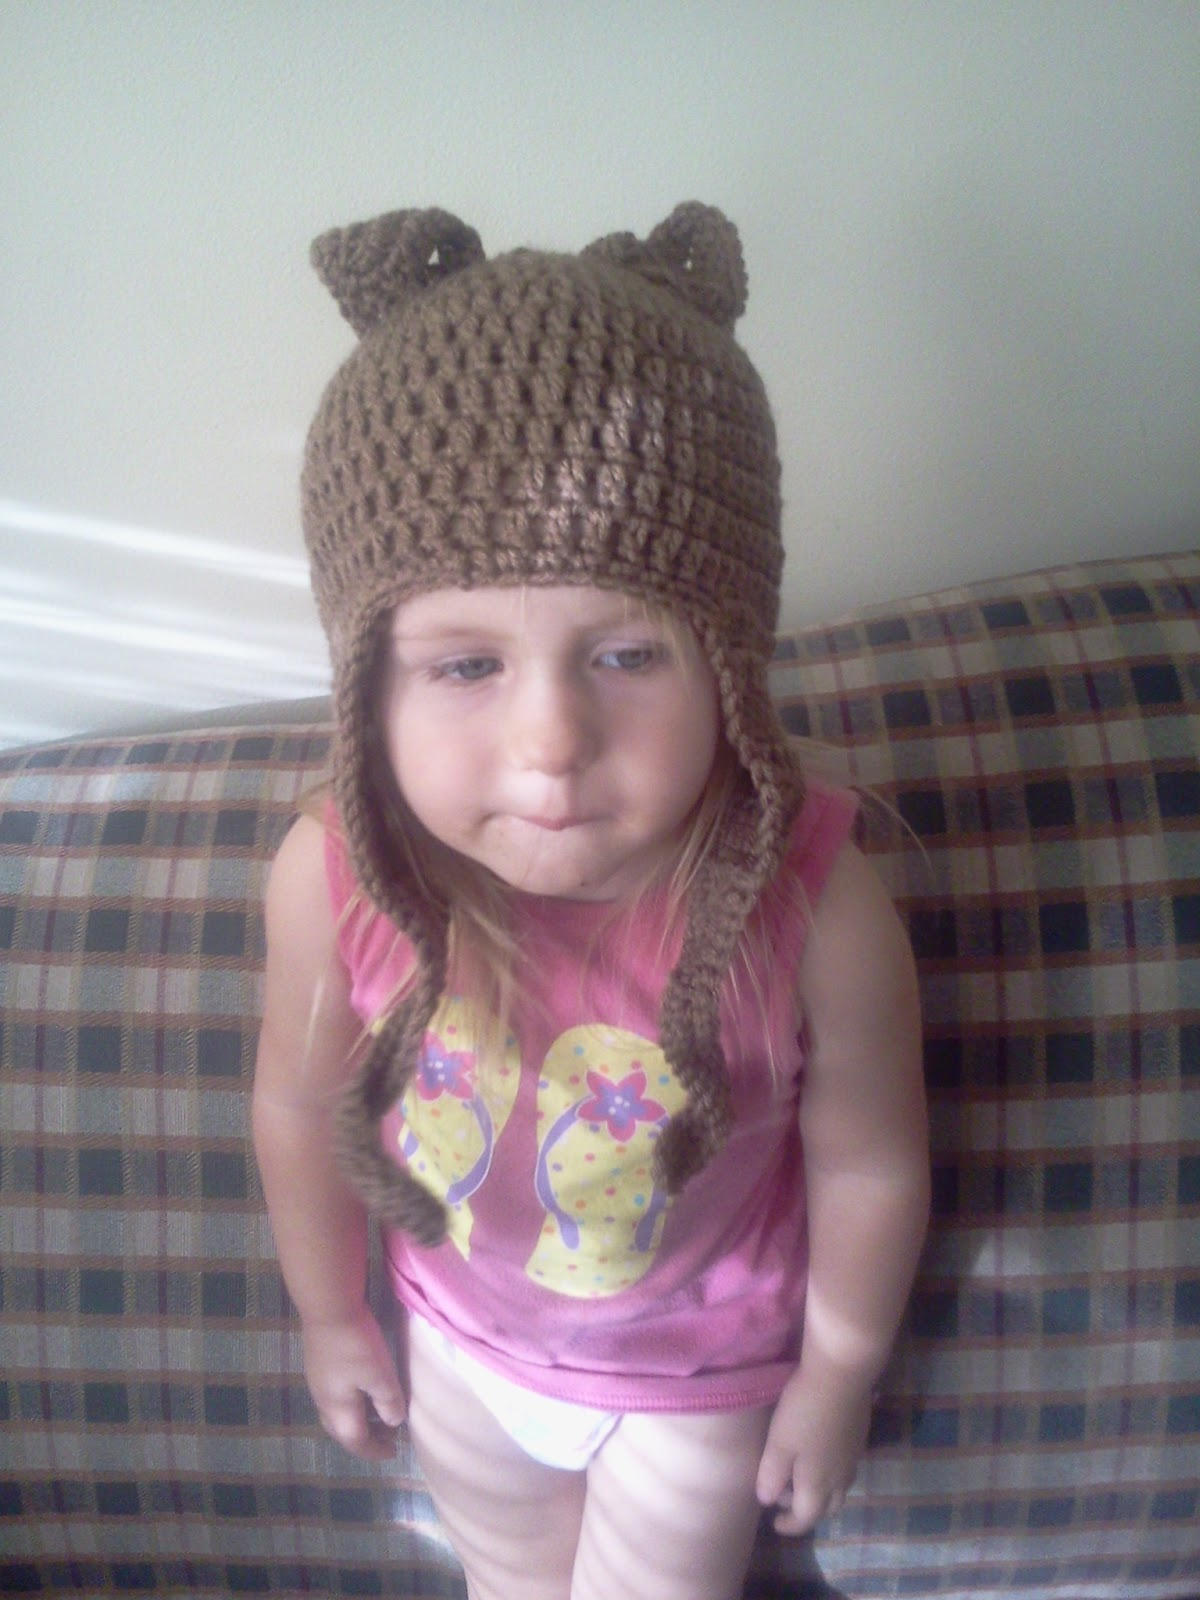 StormFly Crafts: Crochet Hat With Ears